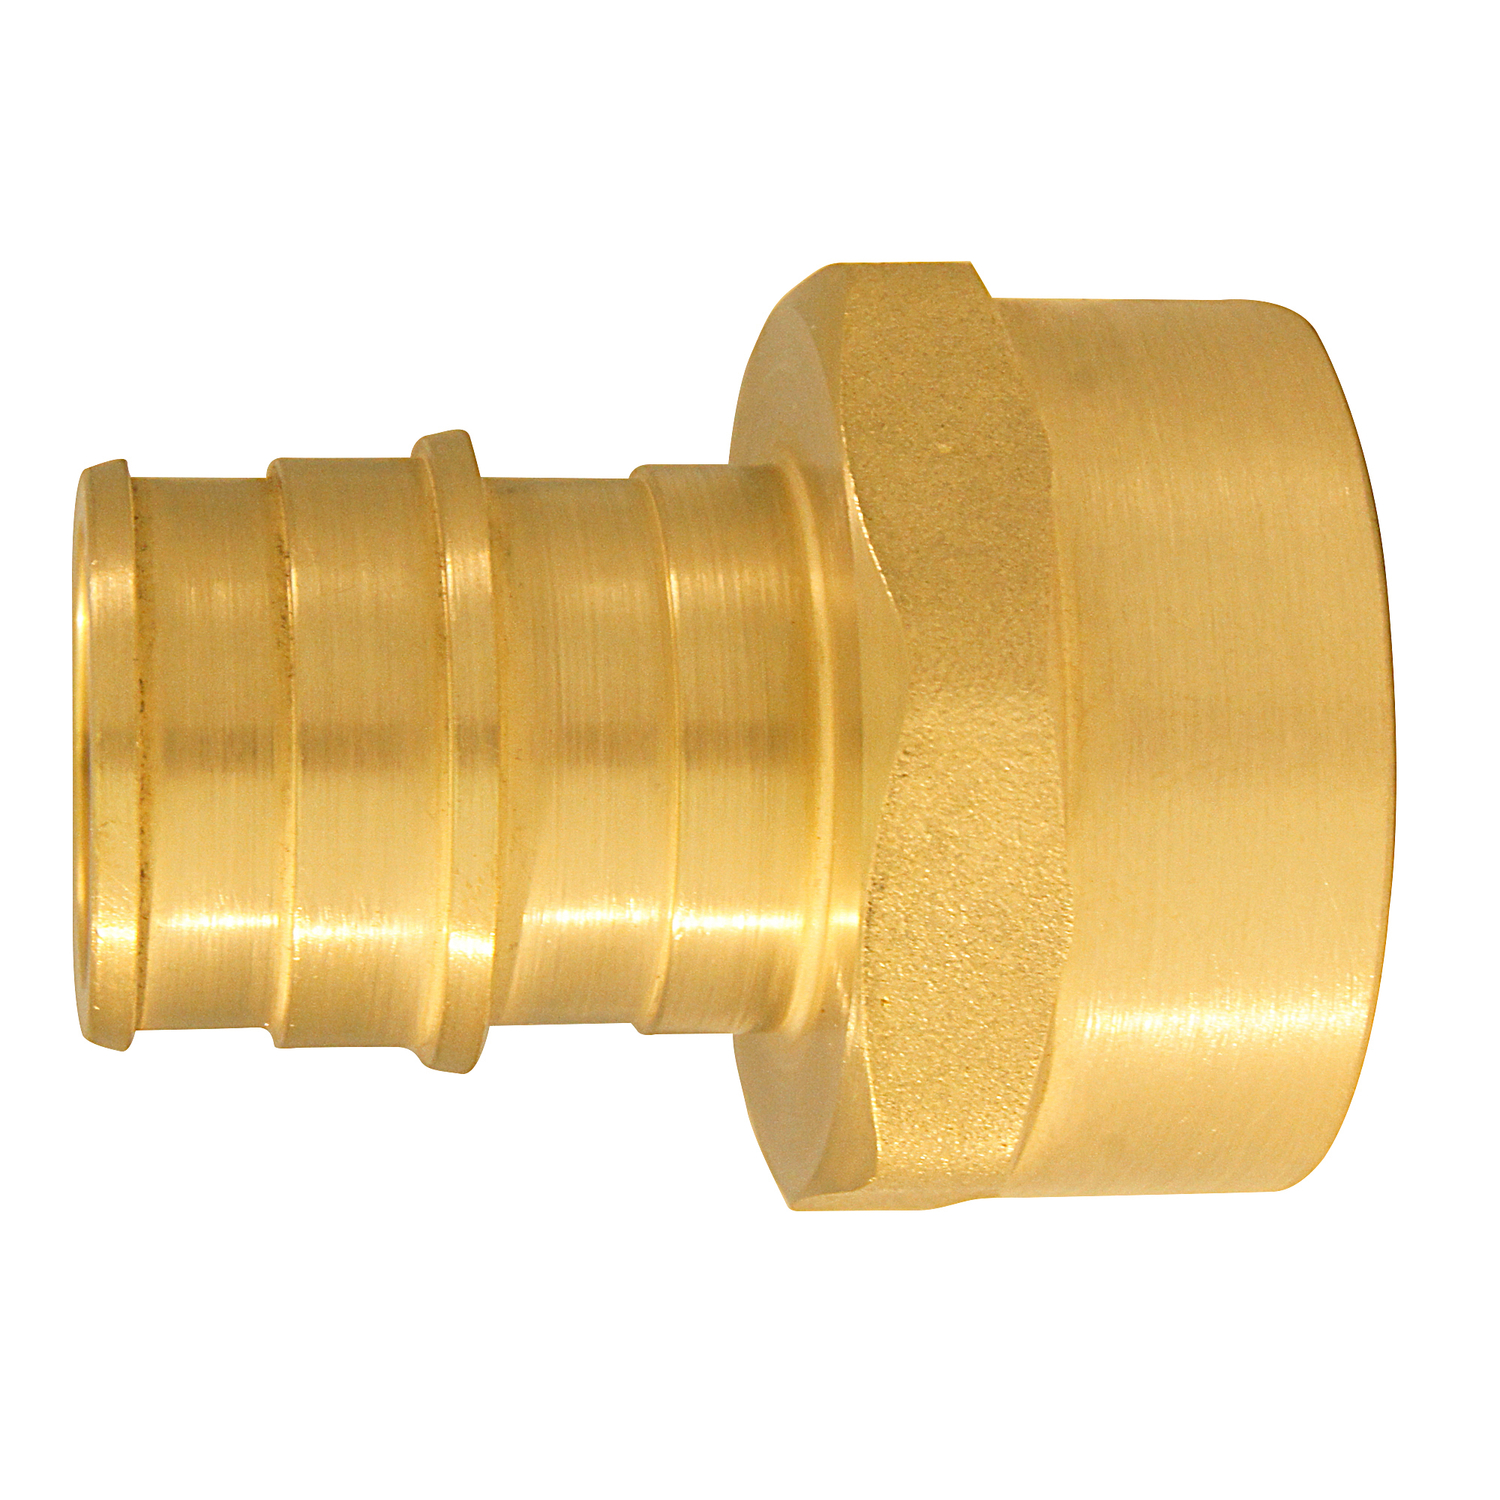 Apollo  Expansion PEX / Pex A  PEX   x 3/4 in. Dia. 3/4 in. FPT  Female Adapter  10 each